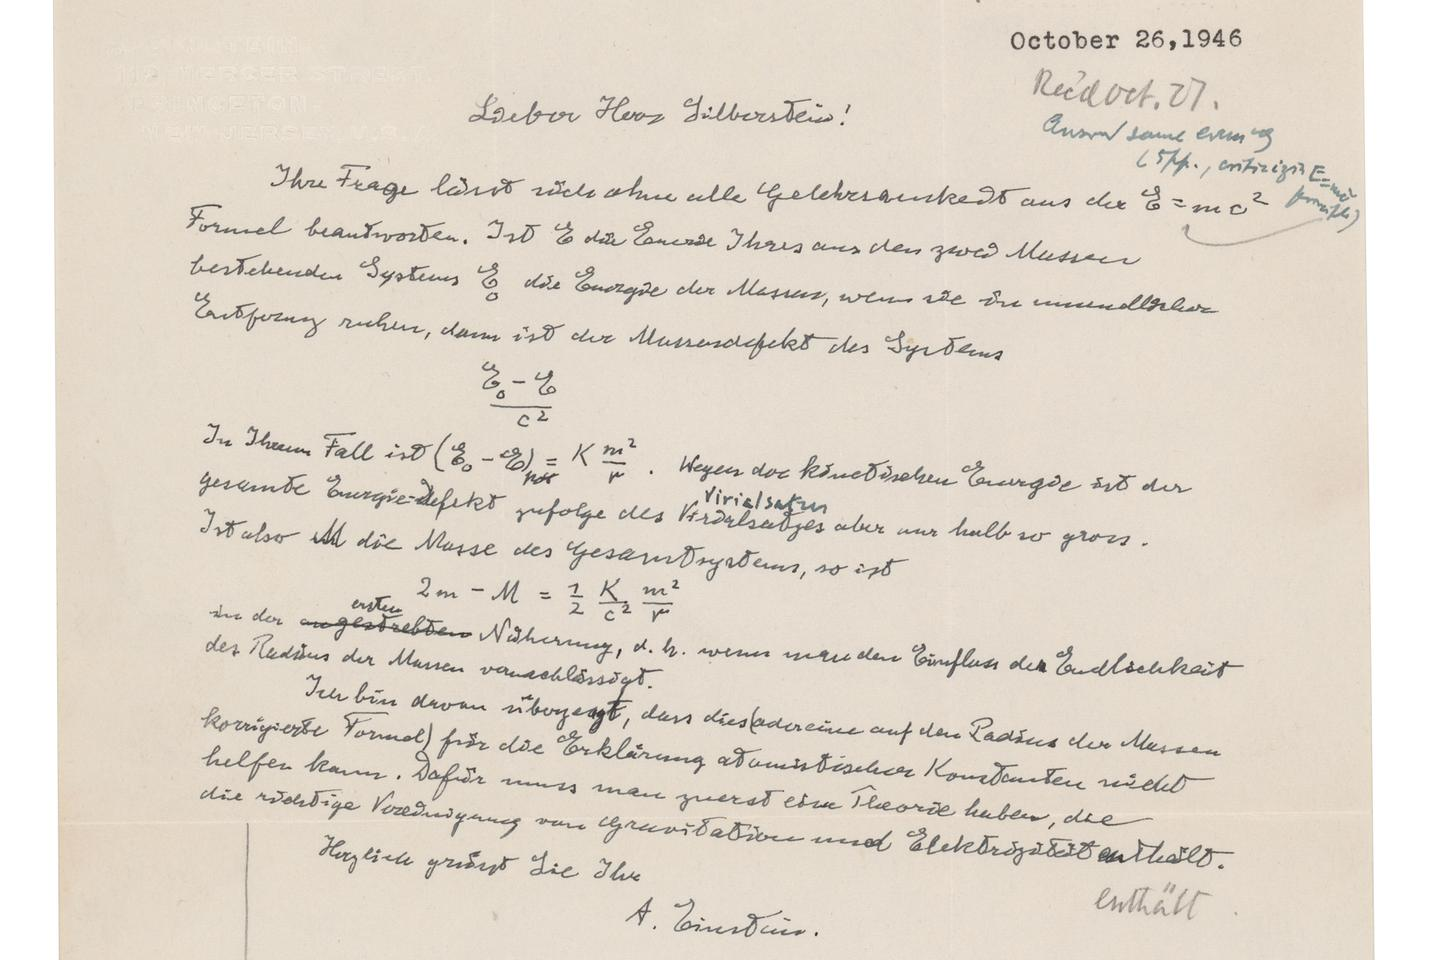 """Invoking the immutable laws of supply and demand, this one page handwritten letter from Albert Einstein to Dr. Ludwik Silberstein, in German, on personal Princeton letterhead, and dated 26 October 1946, sold for $1,243,708. The letter contains the singular known holograph in private ownership of Einstein most famous equation """"E = mc2."""""""